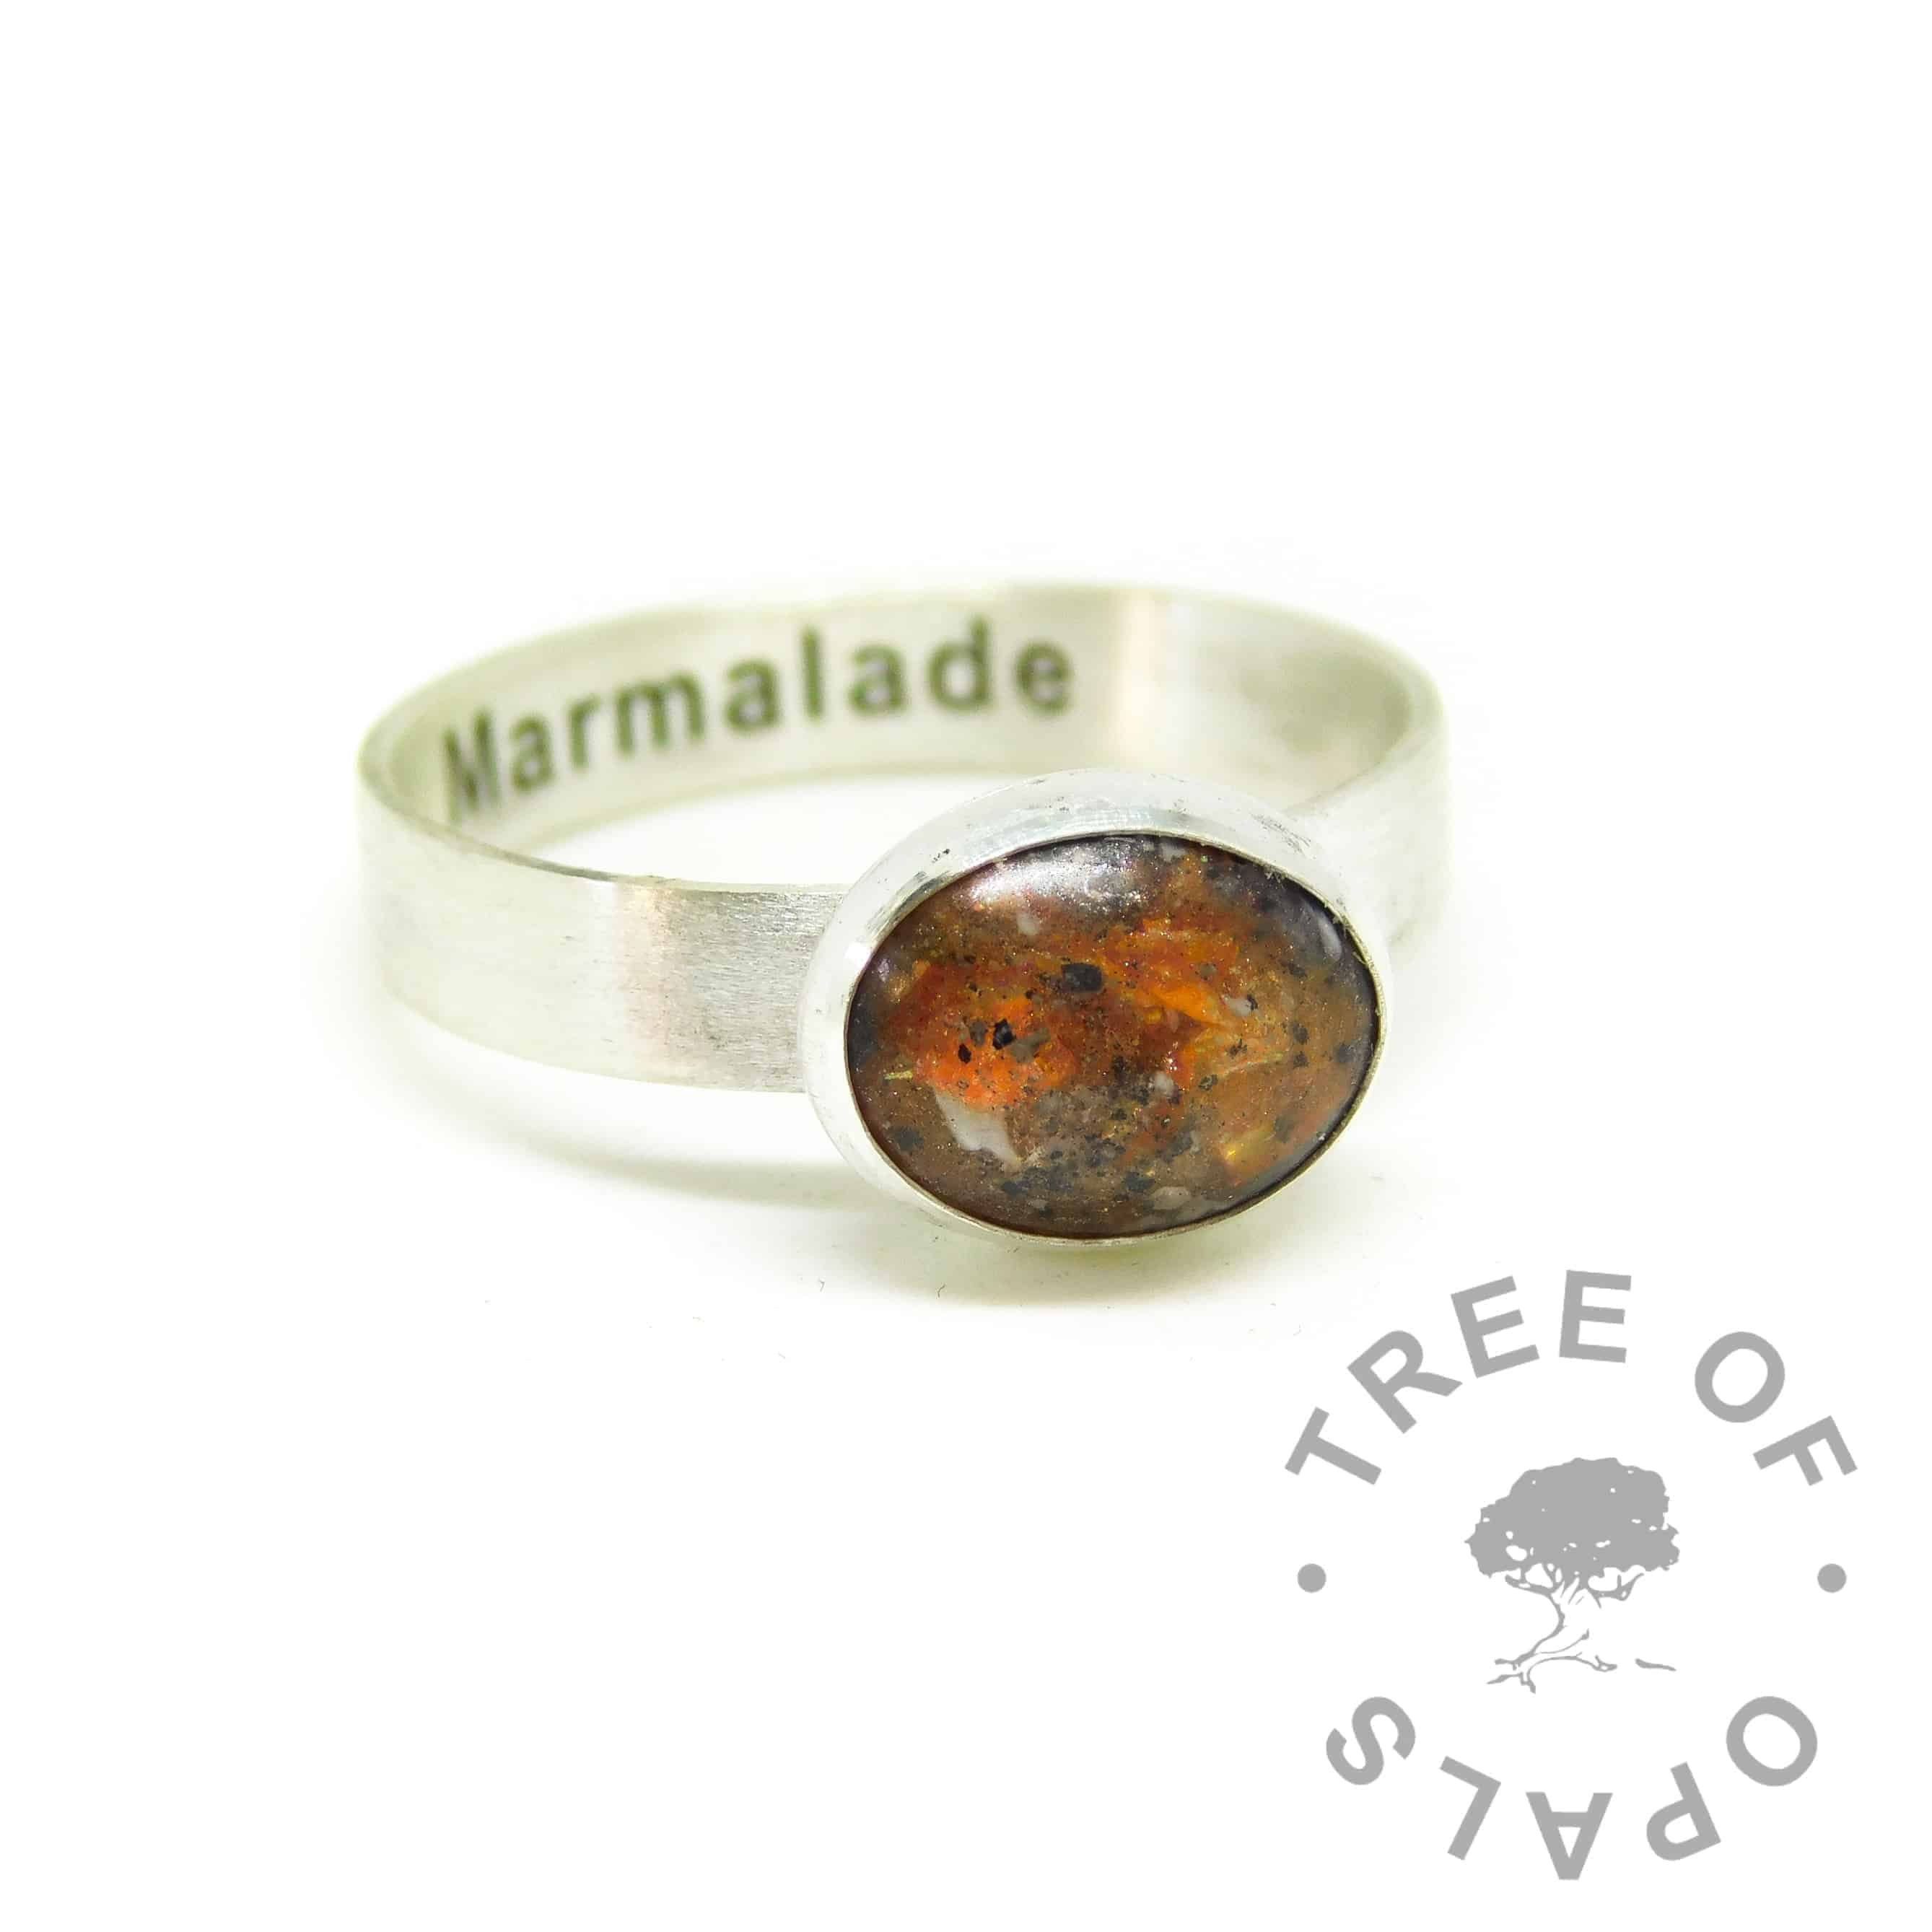 orange ashes ring. Engraved inside in Arial font, brushed band ring. Tangerine orange resin sparkle mix